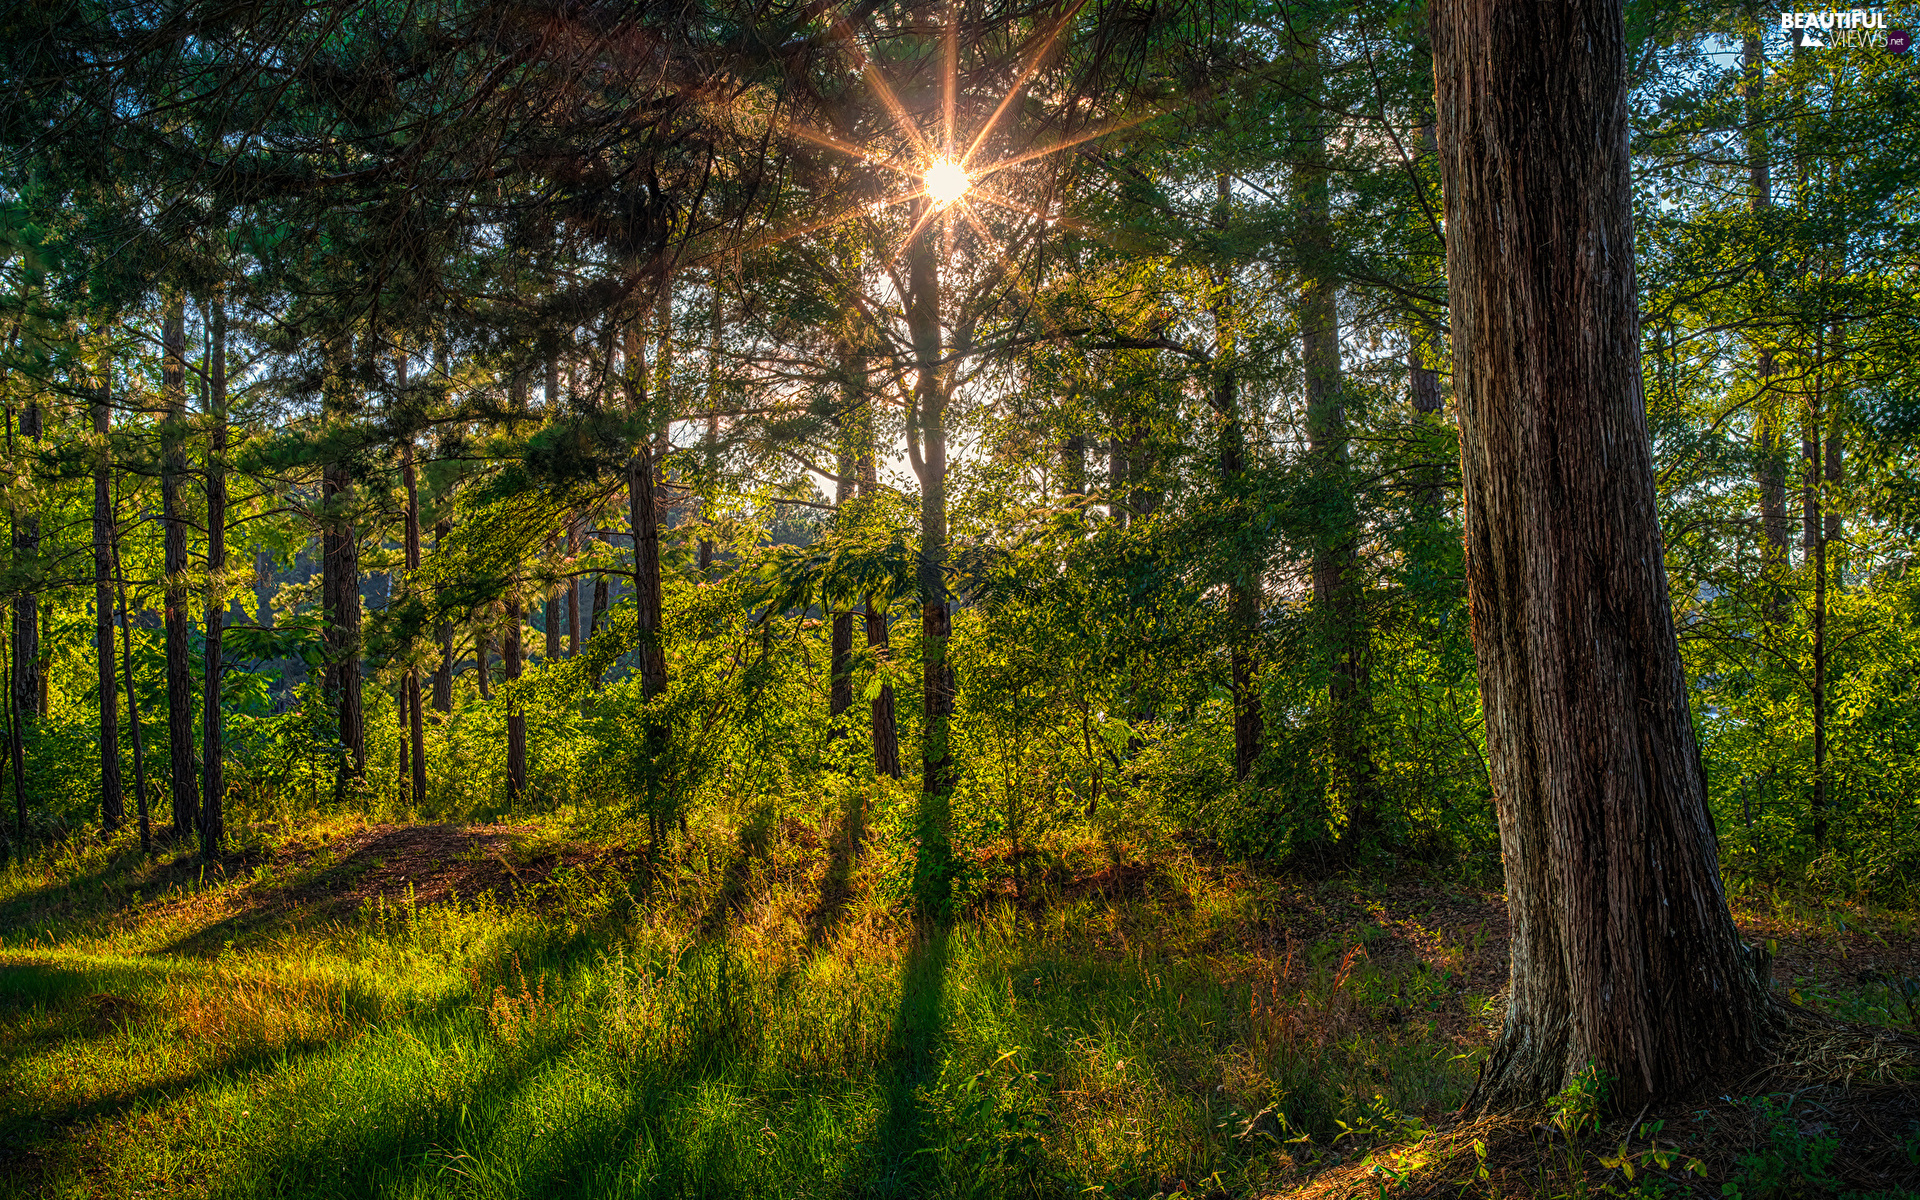 viewes, trunk, rays of the Sun, trees, grass, trees, forest, viewes